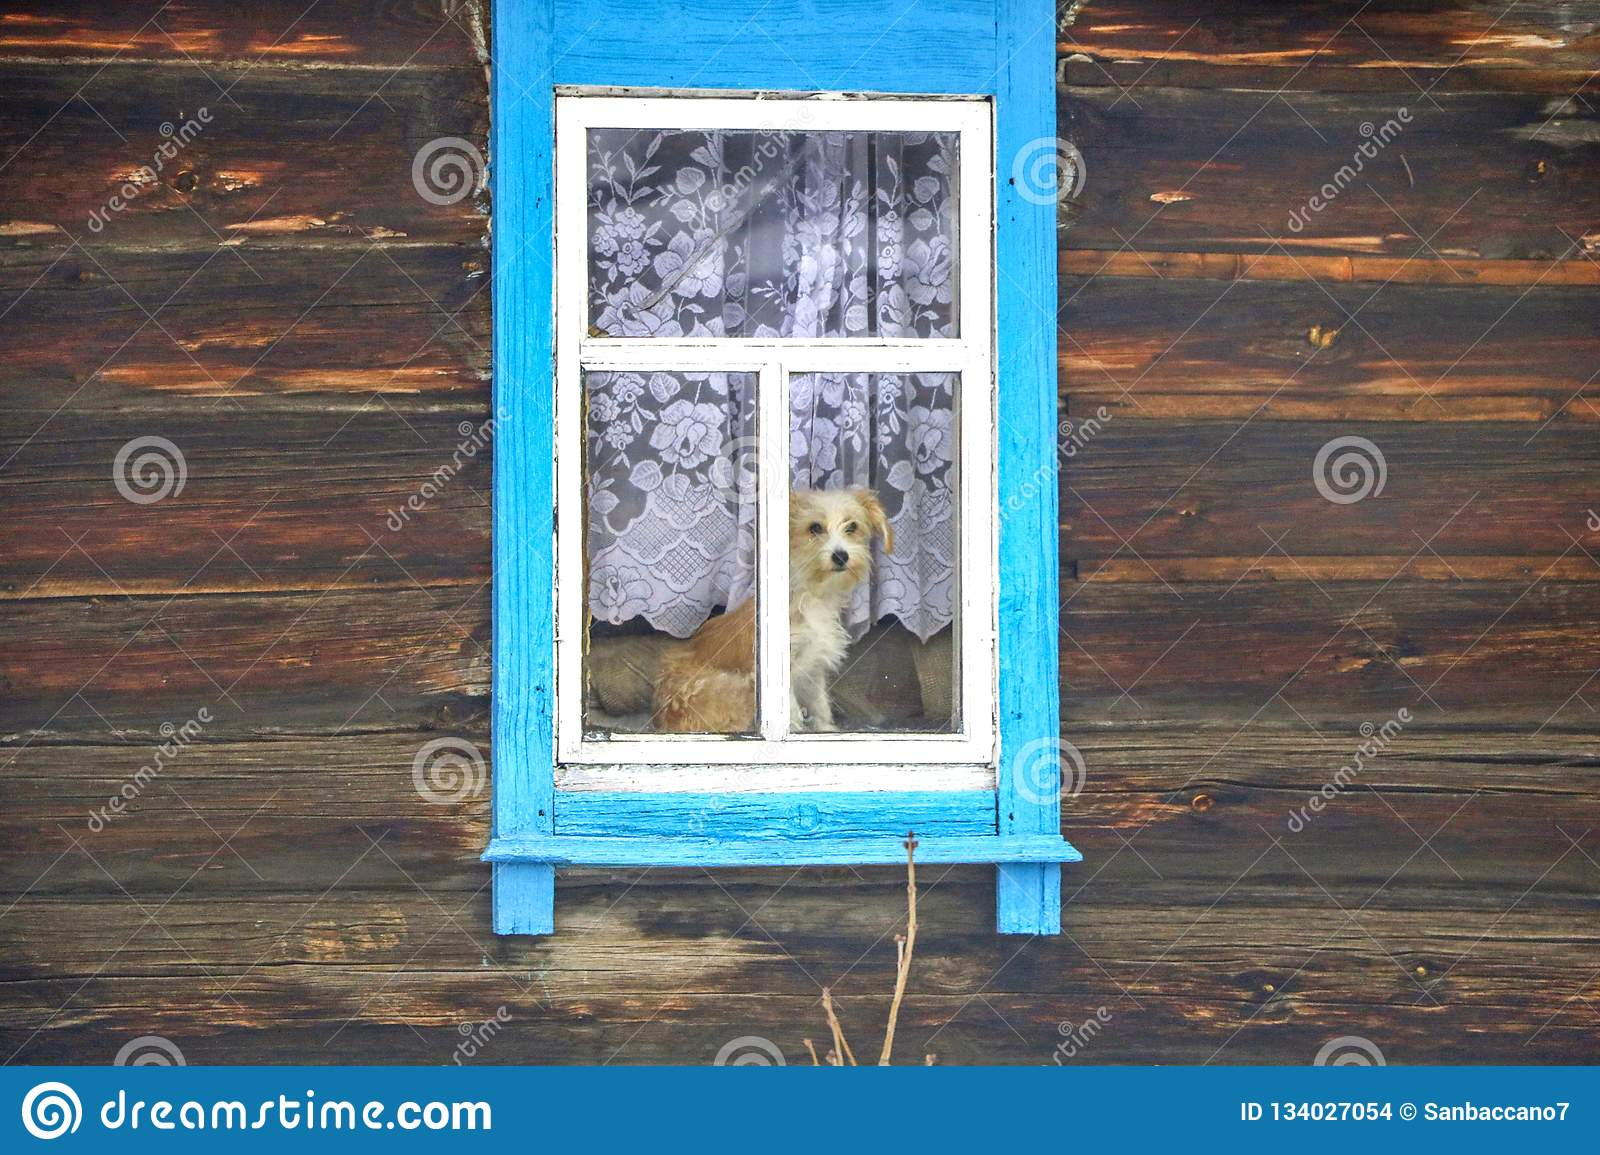 Dog in the window of a wooden house